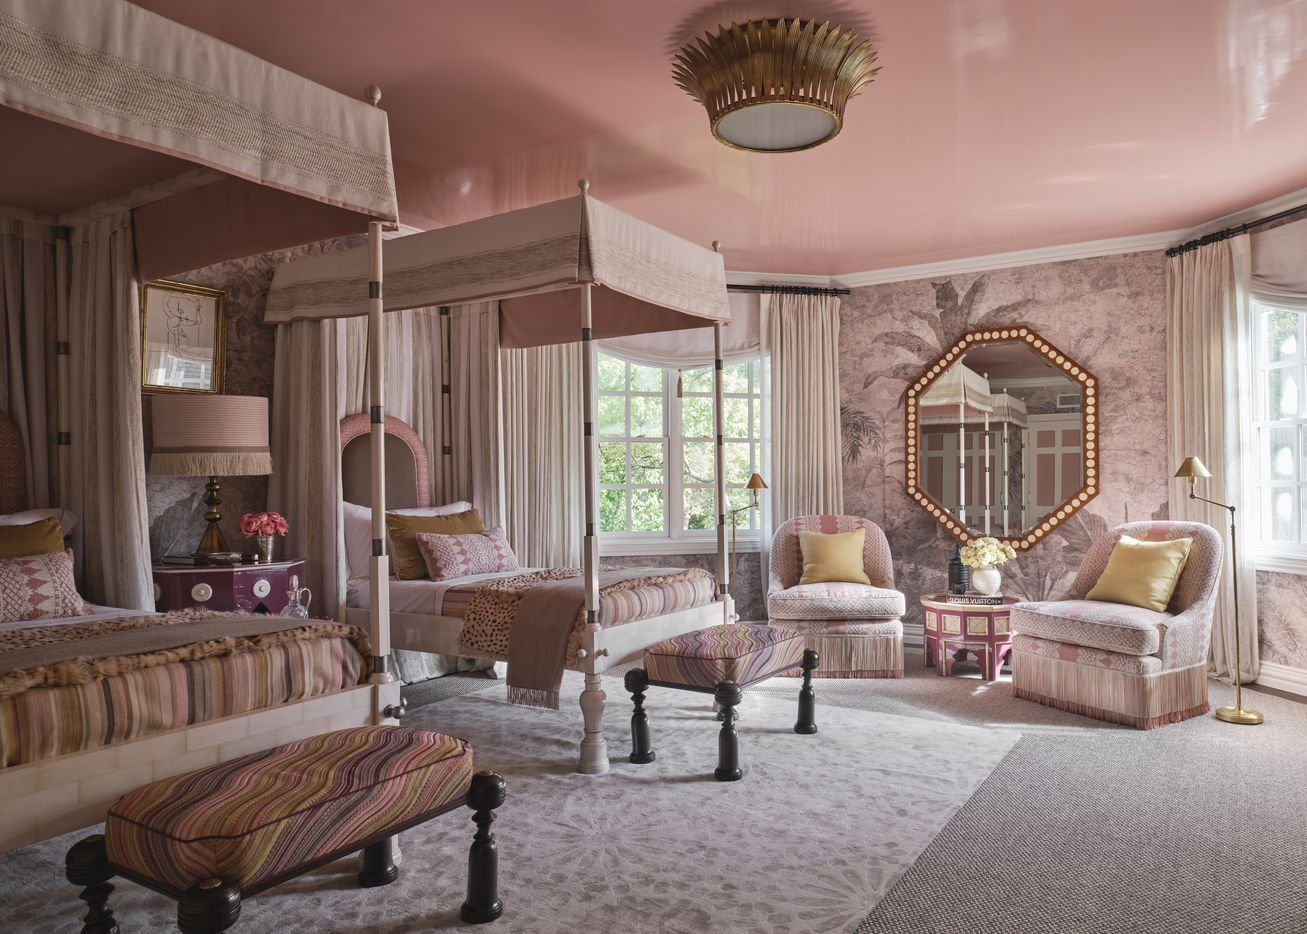 This pink guest bedroom on the second level of the 2021 Kips Bay Decorator Show House Dallas was designed by Martyn Lawrence Bullard Design. The room has pink hues, patterned fabrics, an antique Indian armoire and other design details sourced from around the world.